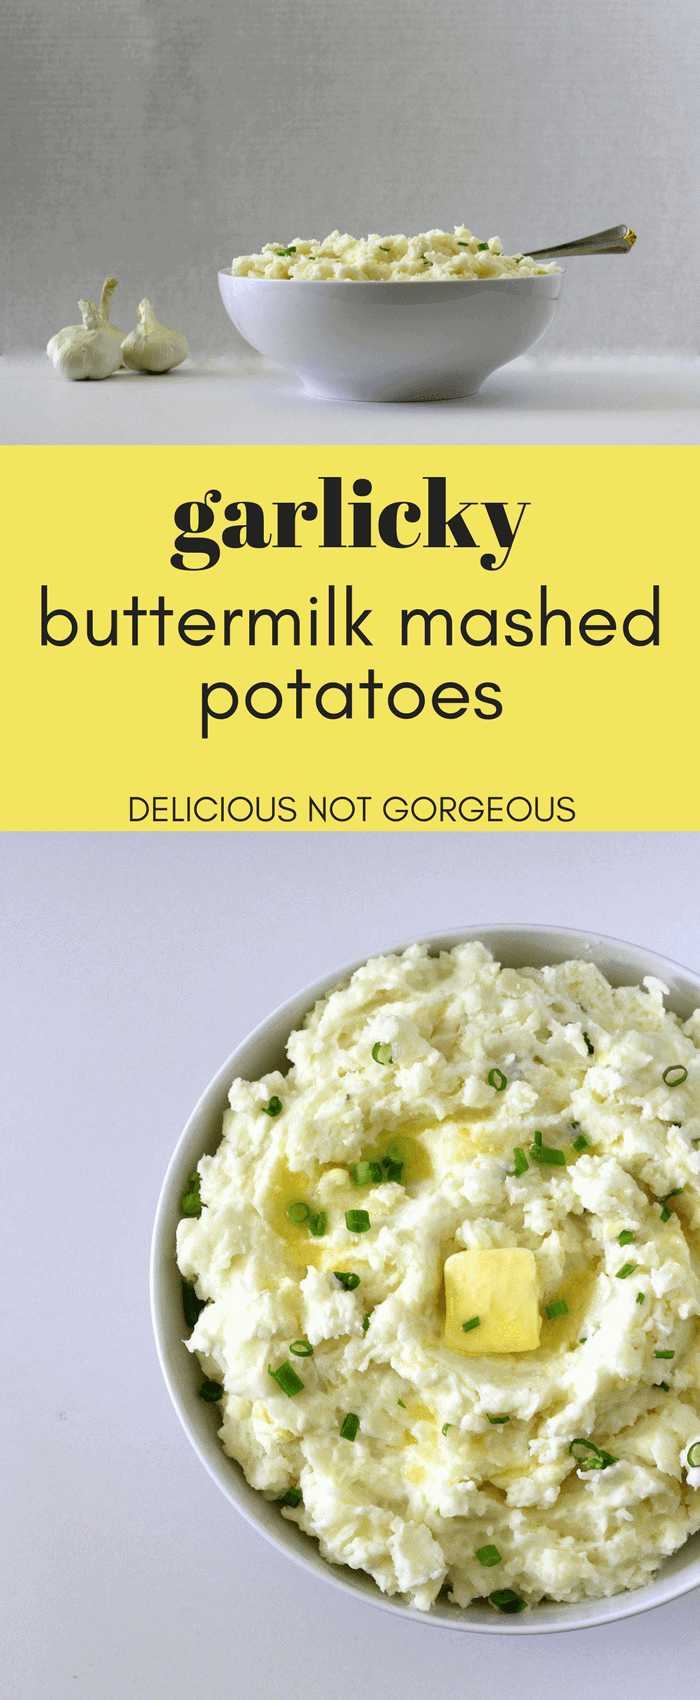 These garlicky buttermilk mashed potatoes are the perfect side for Thanksgiving (or any time, really). #thanksgiving #mashedpotatoes #garlicmashedpotatoes